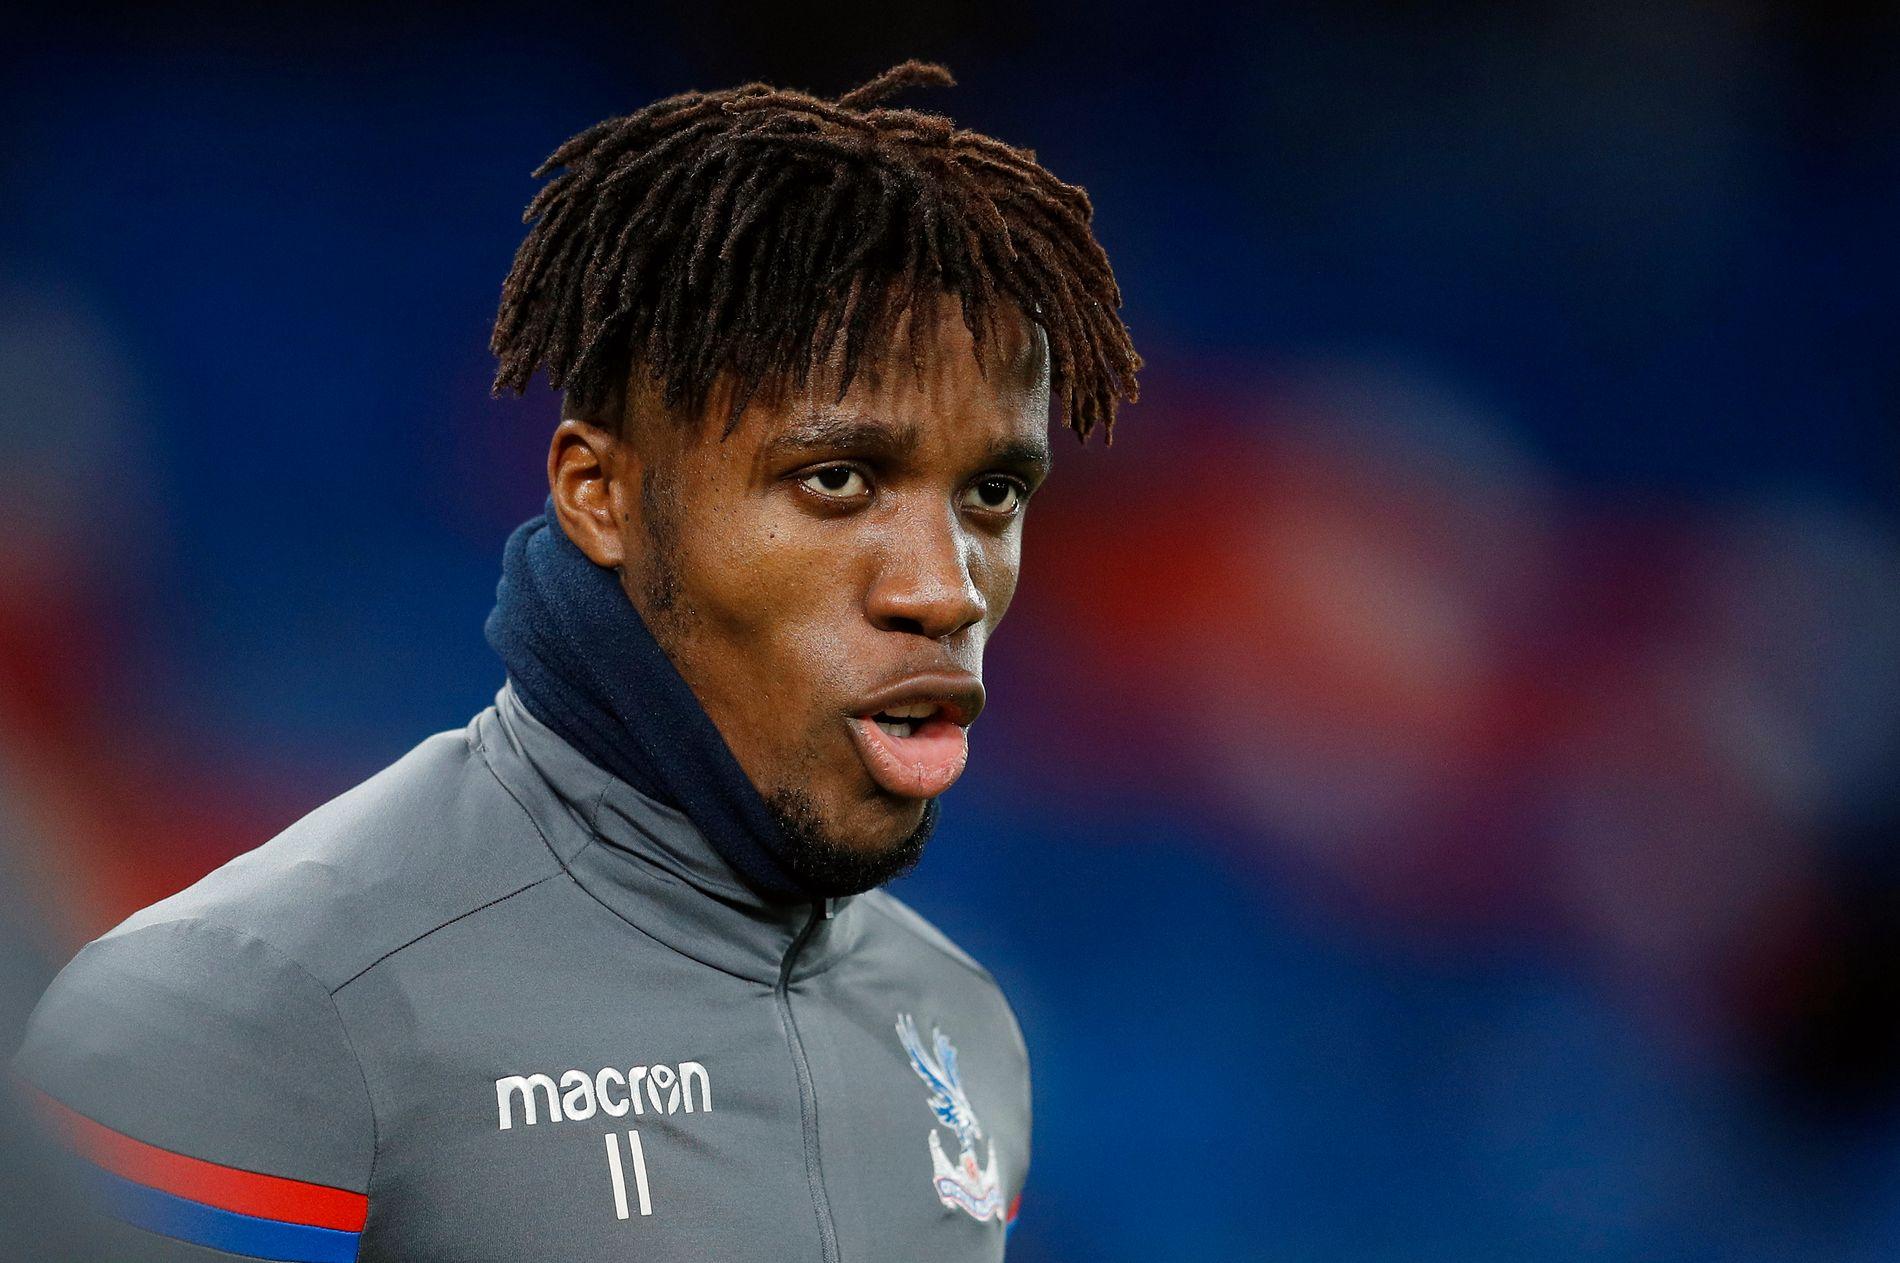 BRENNHET: Crystal Palace-profilen Wilfried Zaha er aktuell for flere toppklubber i Premier League.